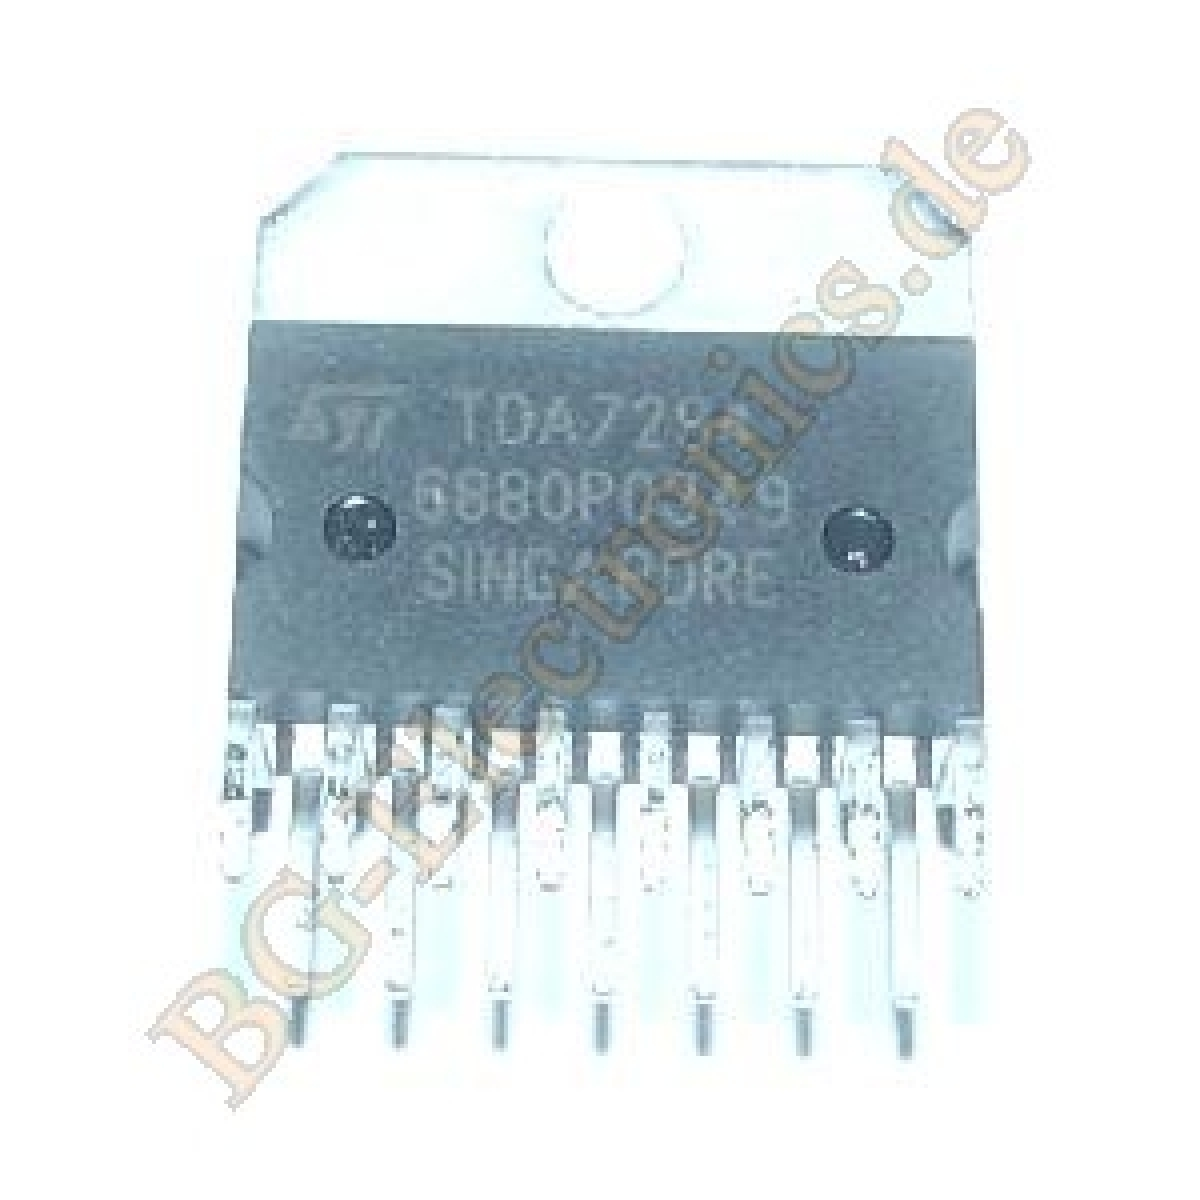 1-x-TDA7294-100V-100W-DMOS-AUDIO-POWER-VERSTARKER-MIT-STM-Multiwatt-15-1pcs